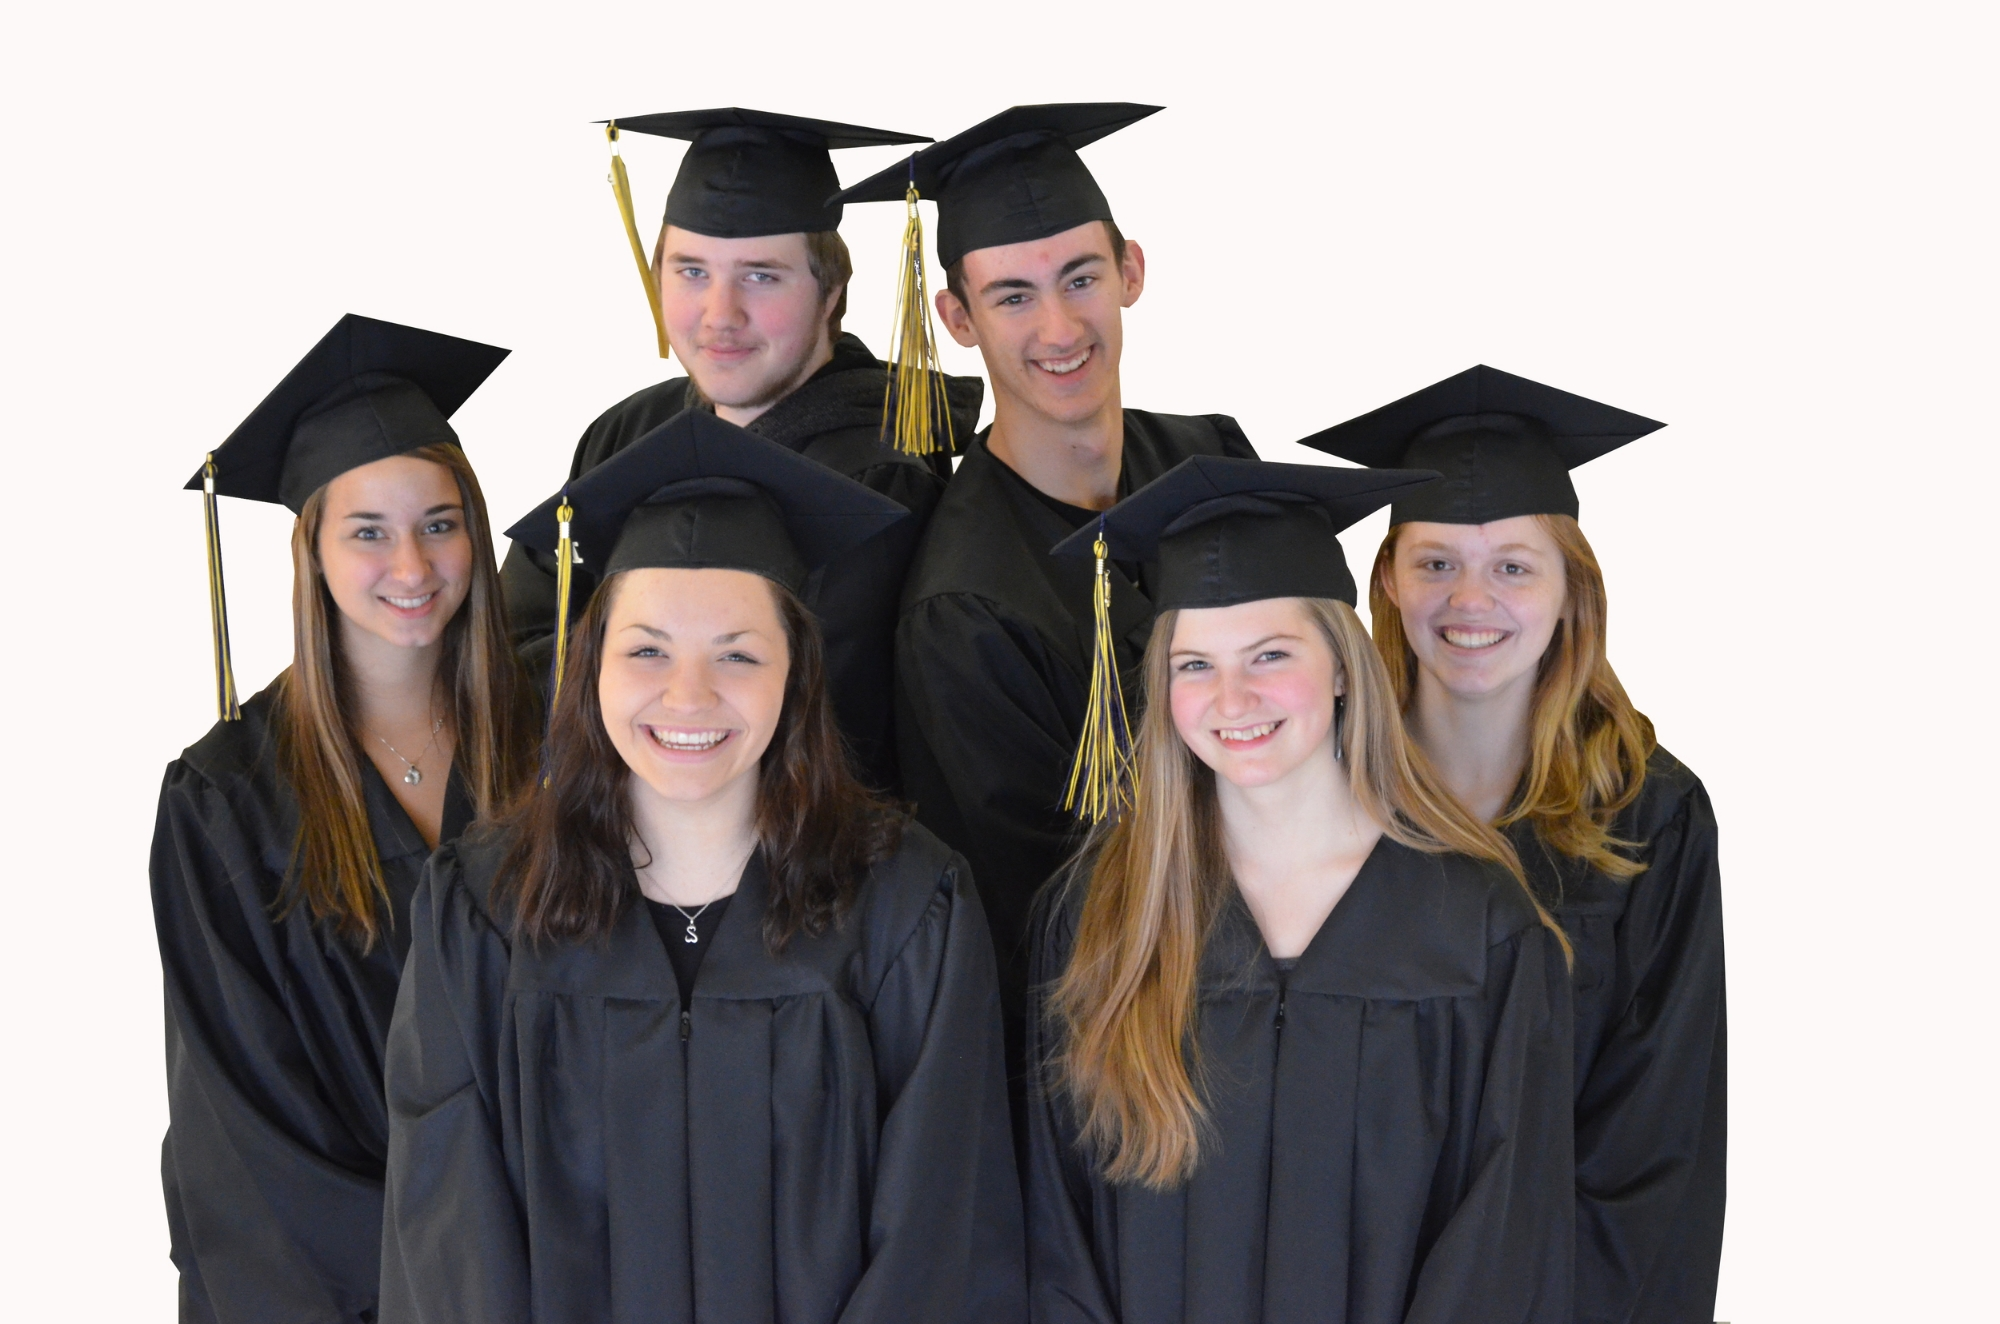 Members of the Northport High School Class of 2014. CLOCKWISE FROM THE TOP DOUGLAS FIRESTONE, JAKE KRISTIANSEN, AUTUMN DUFFINEY, OLIVIA KINKER, ASHLEY PINO, FIONA MULLER. All qualified as Northport Promise Scholars! Photo by Jenny Evans.